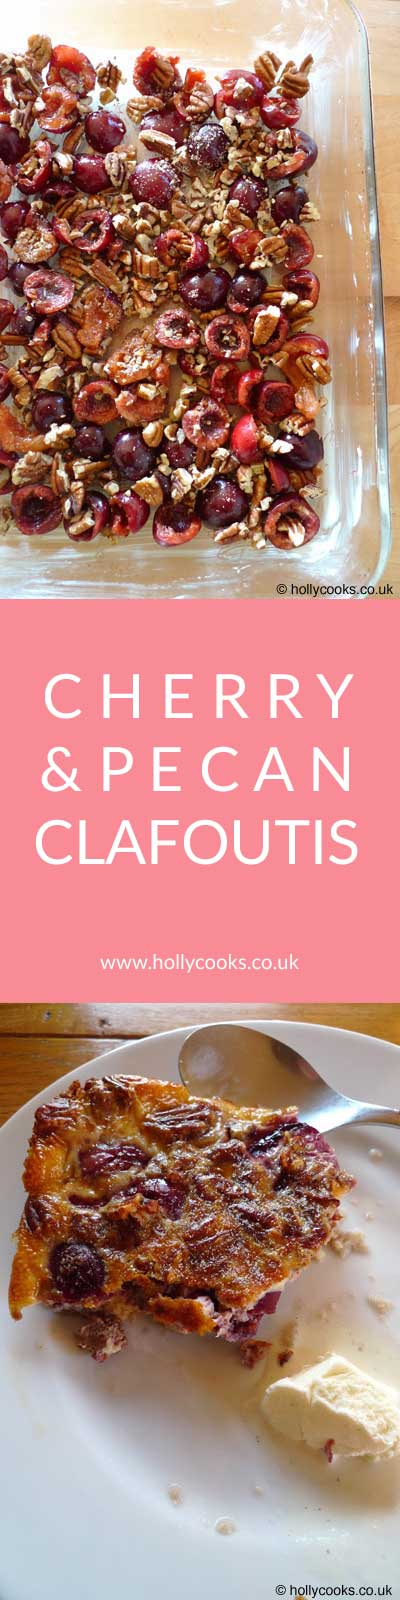 Holly-cooks-cherry-and-pecan-clafoutis-pinterest